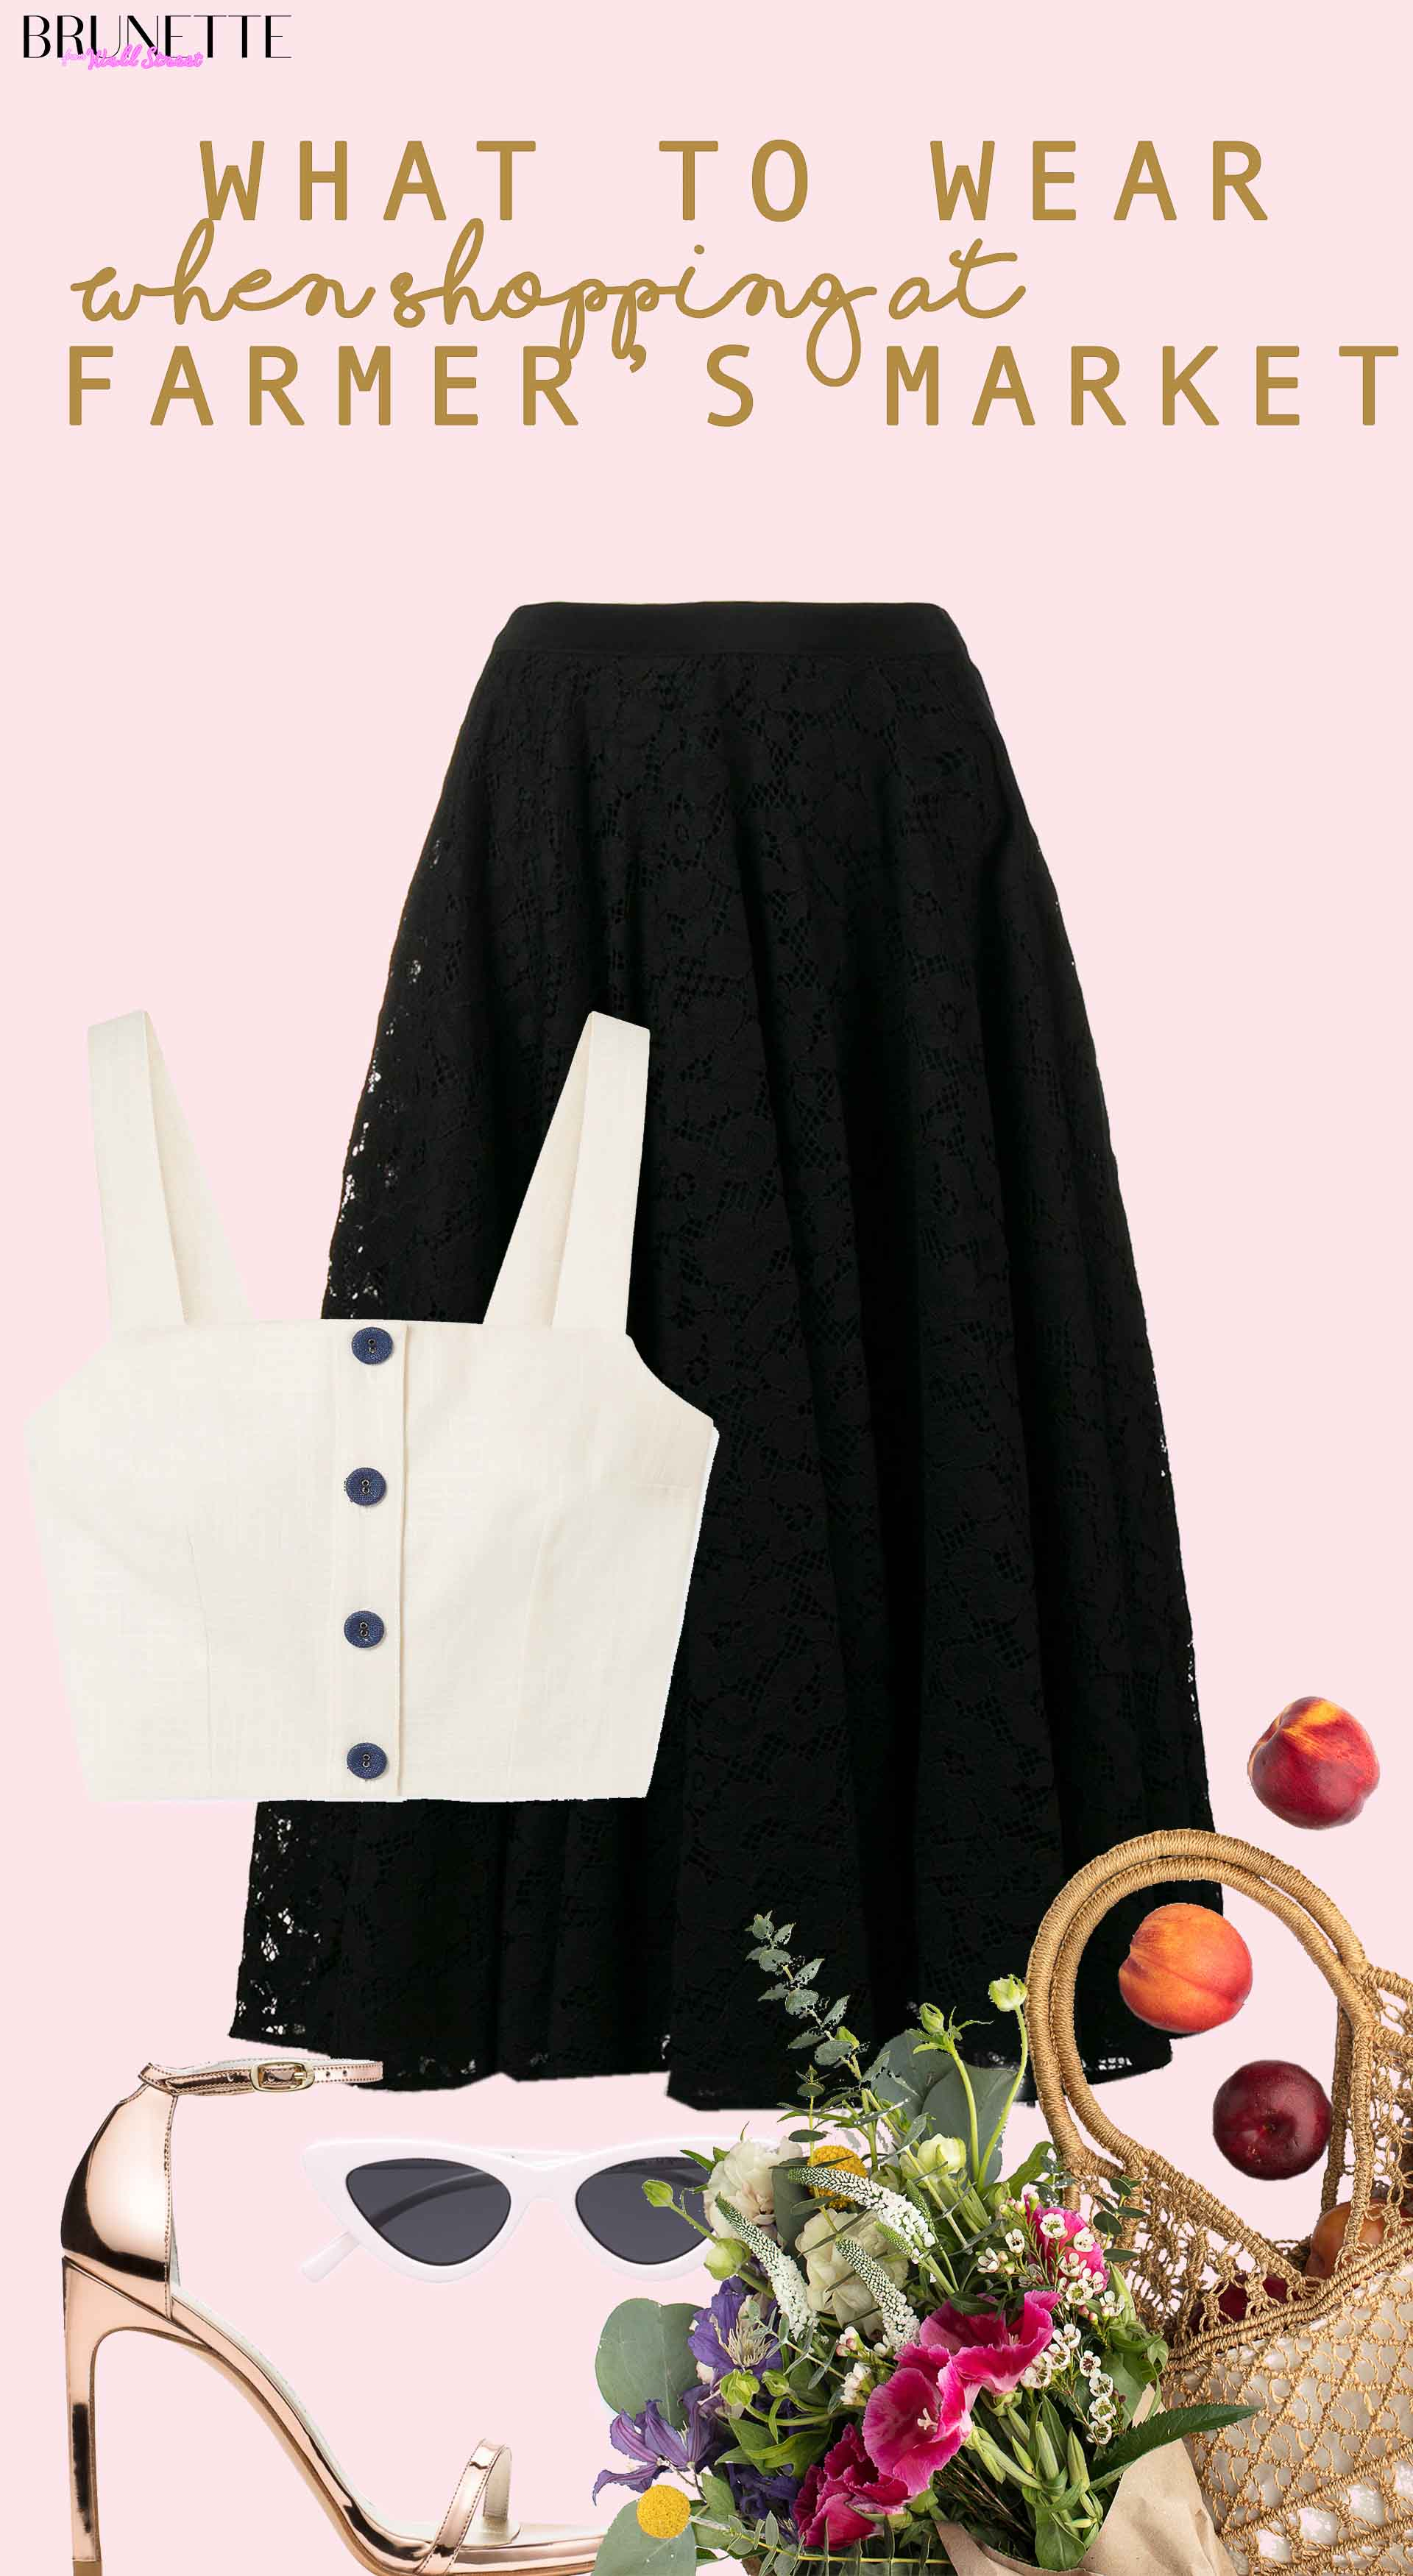 linen crop top, black skirt, cat eye sunglasses, metallic sandals, vegetables with text overlay what to wear when shopping at farmer's market